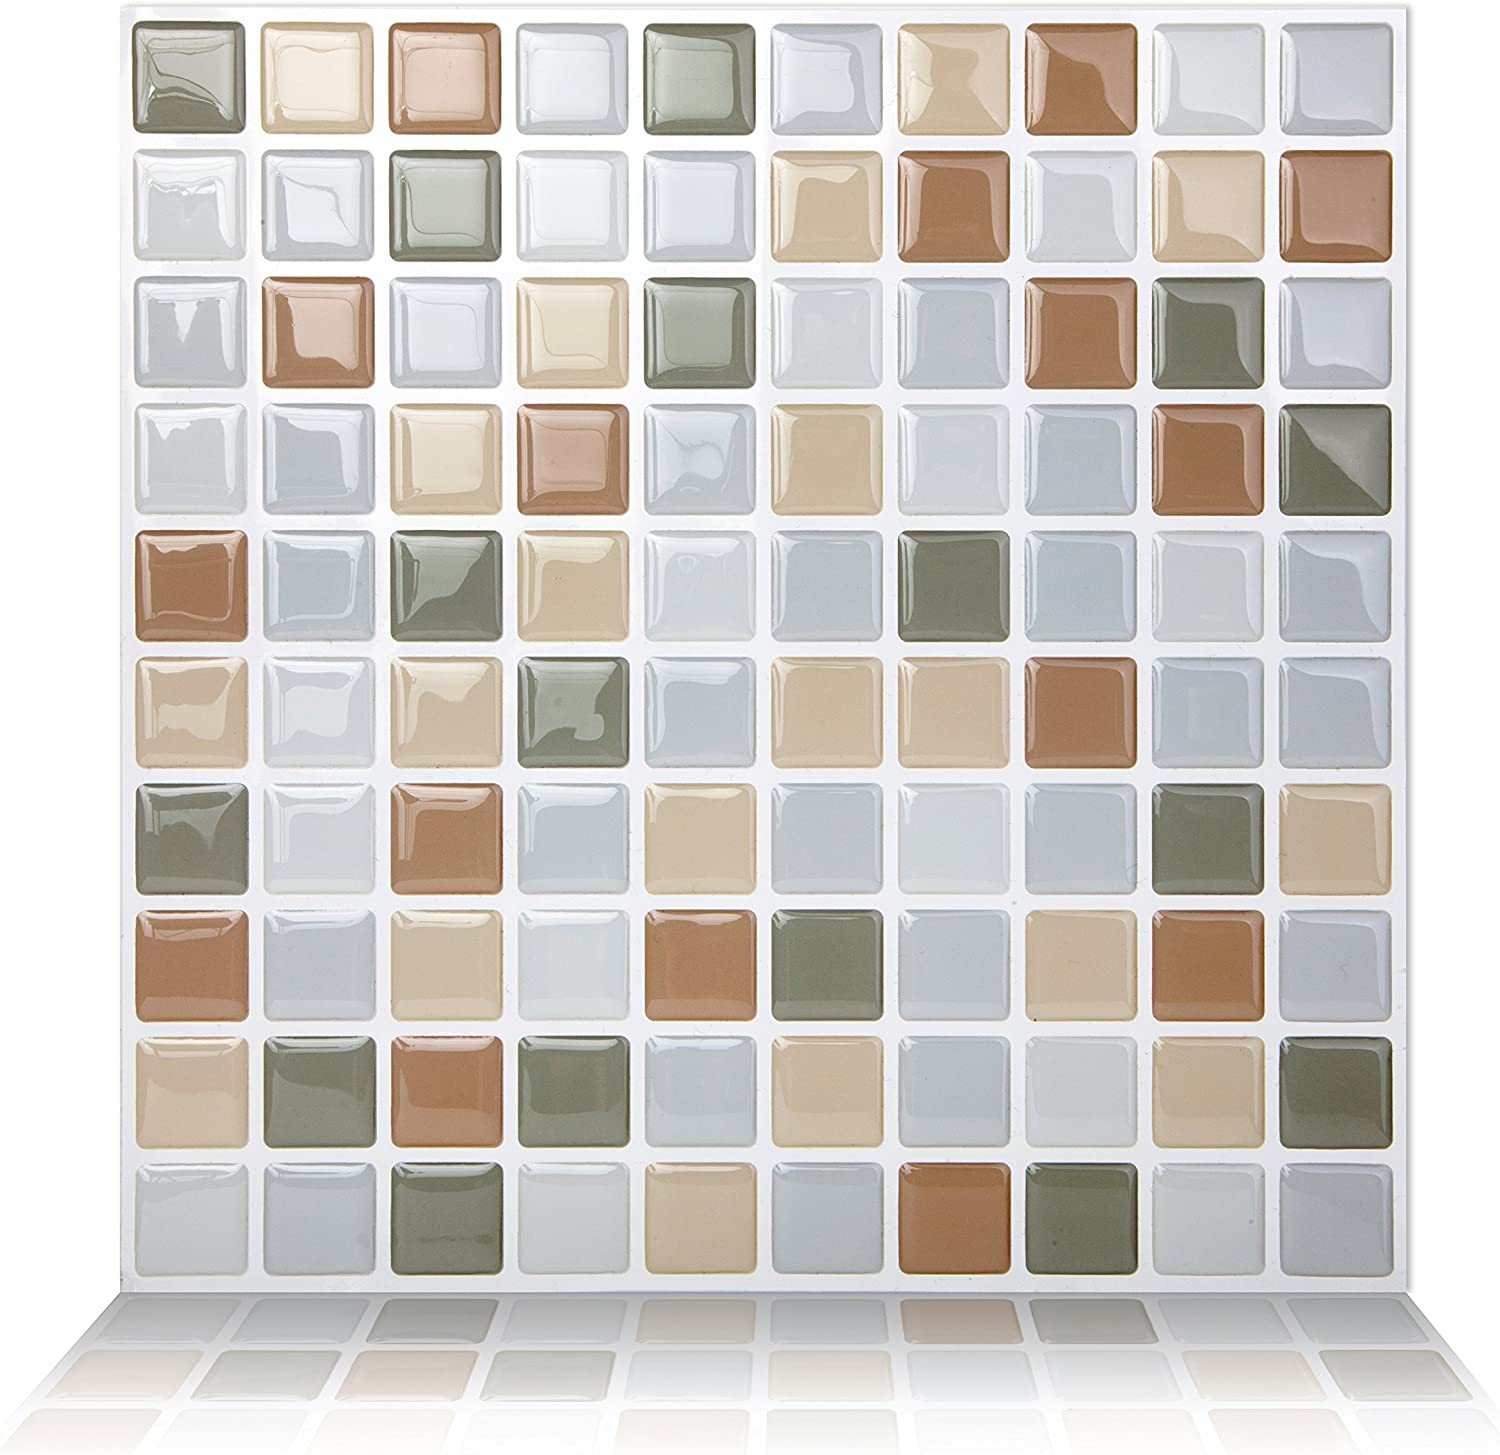 Tic Tac Tiles Peel and Stick Self Adhesive Removable Stick On Kitchen Backsplash Bathroom 3D Wall Tiles in Square Design (Beigegrey, 5)